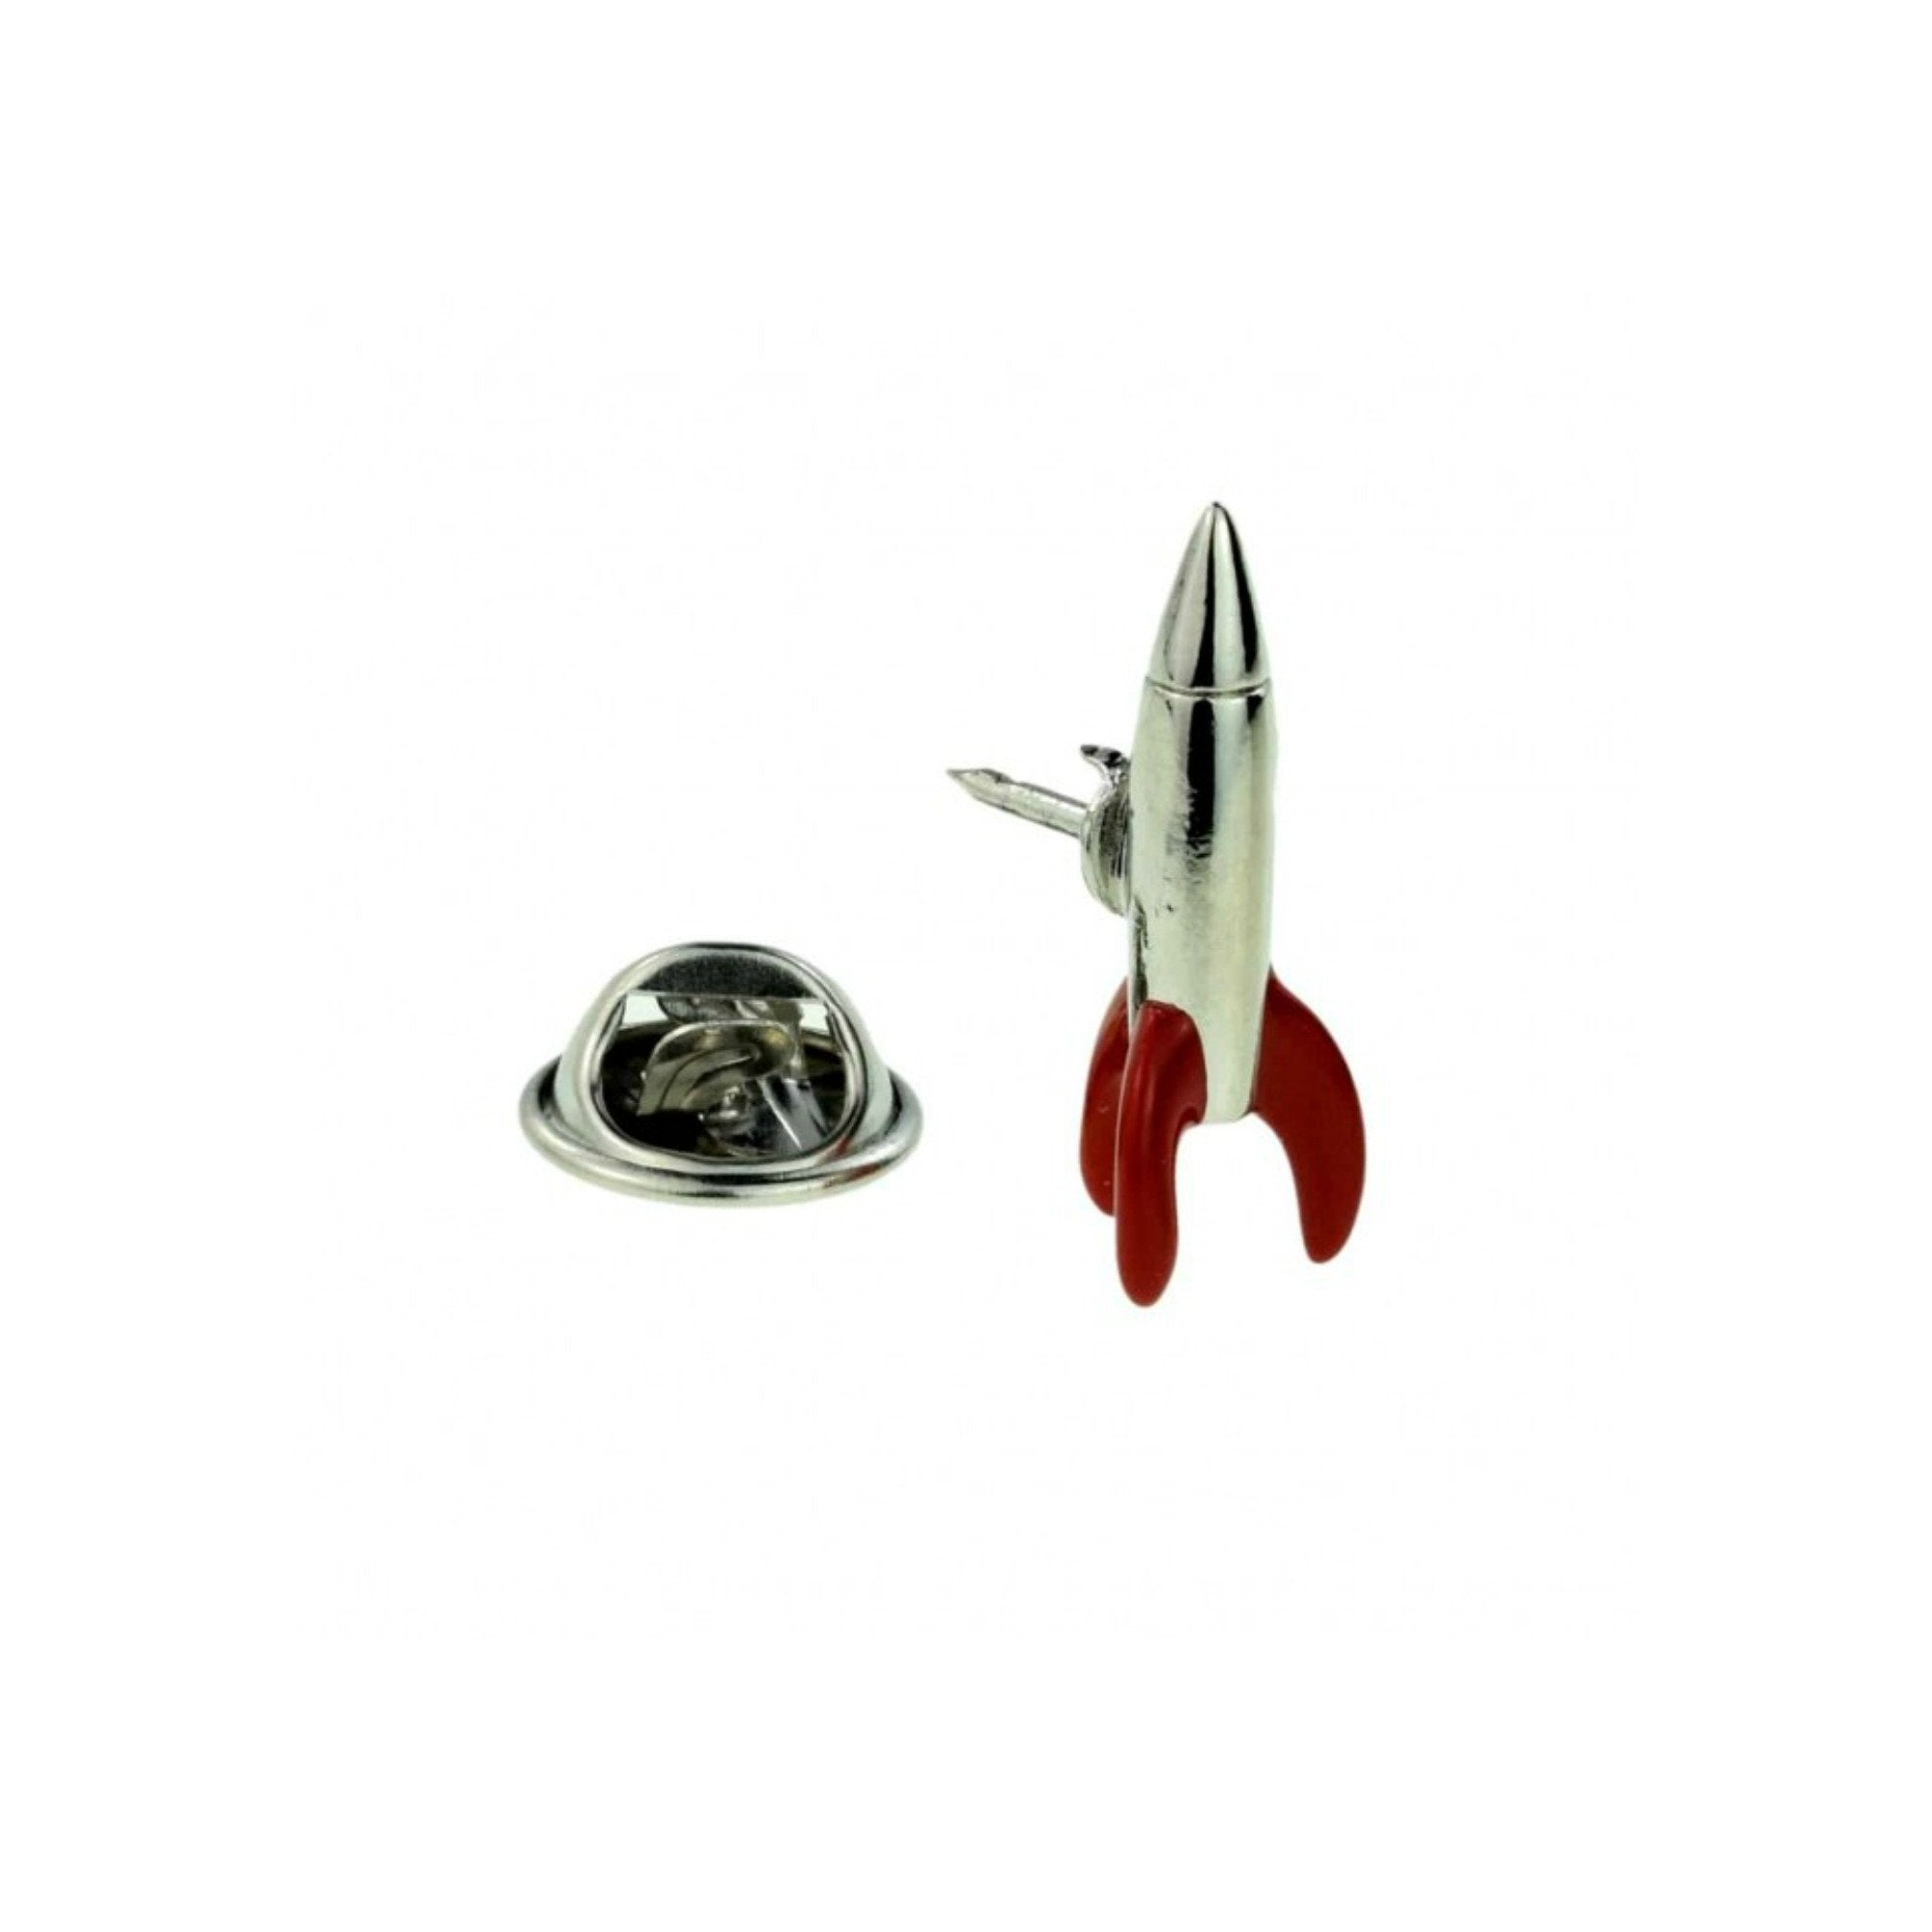 Retro Rocket 3D Lapel Pin Badge - Minimum Mouse